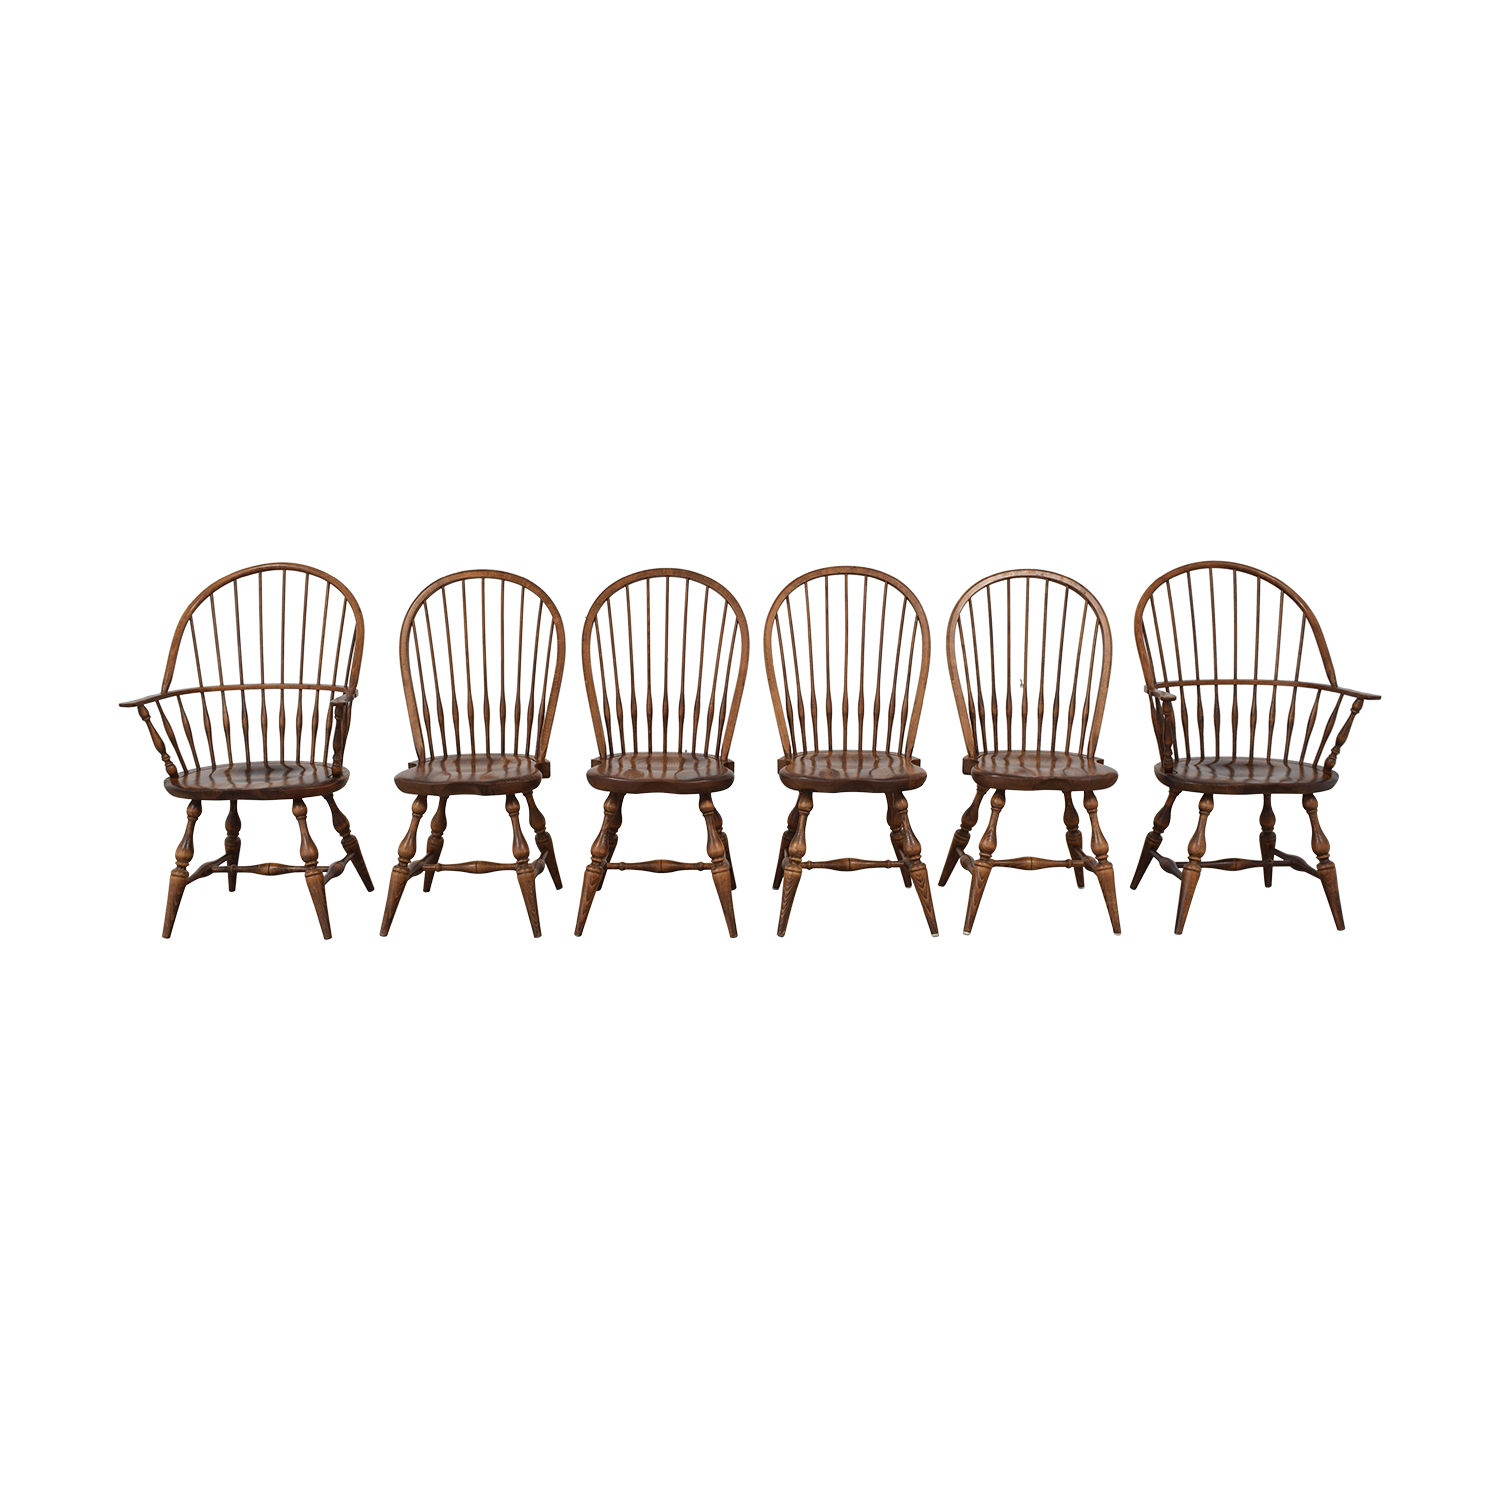 Grange Grange Dining Chairs for sale